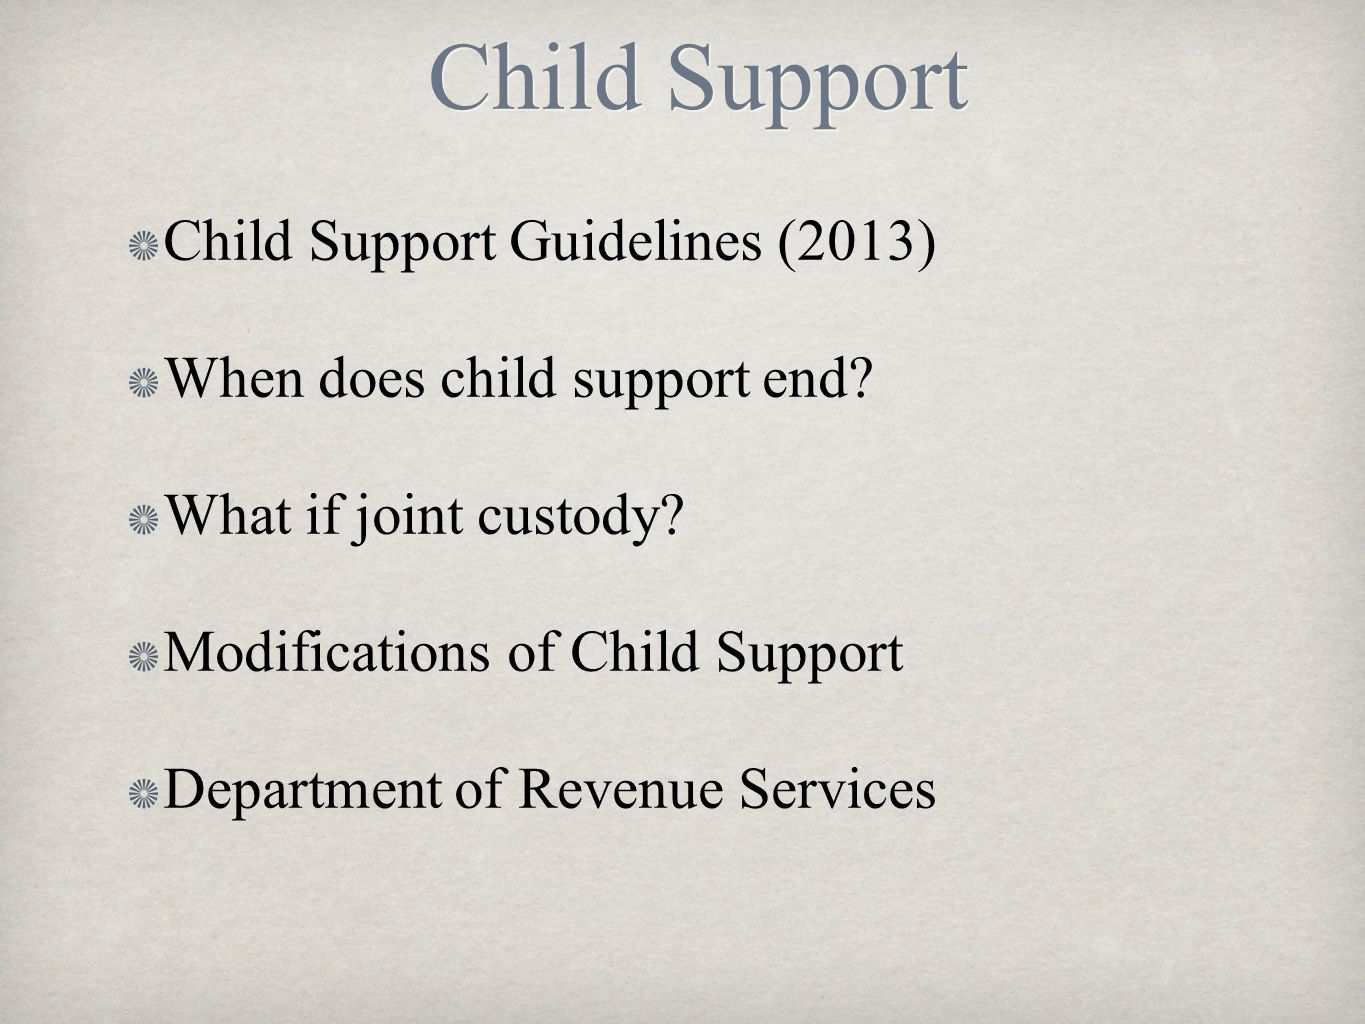 Child Support Child Support Guidelines (2013)